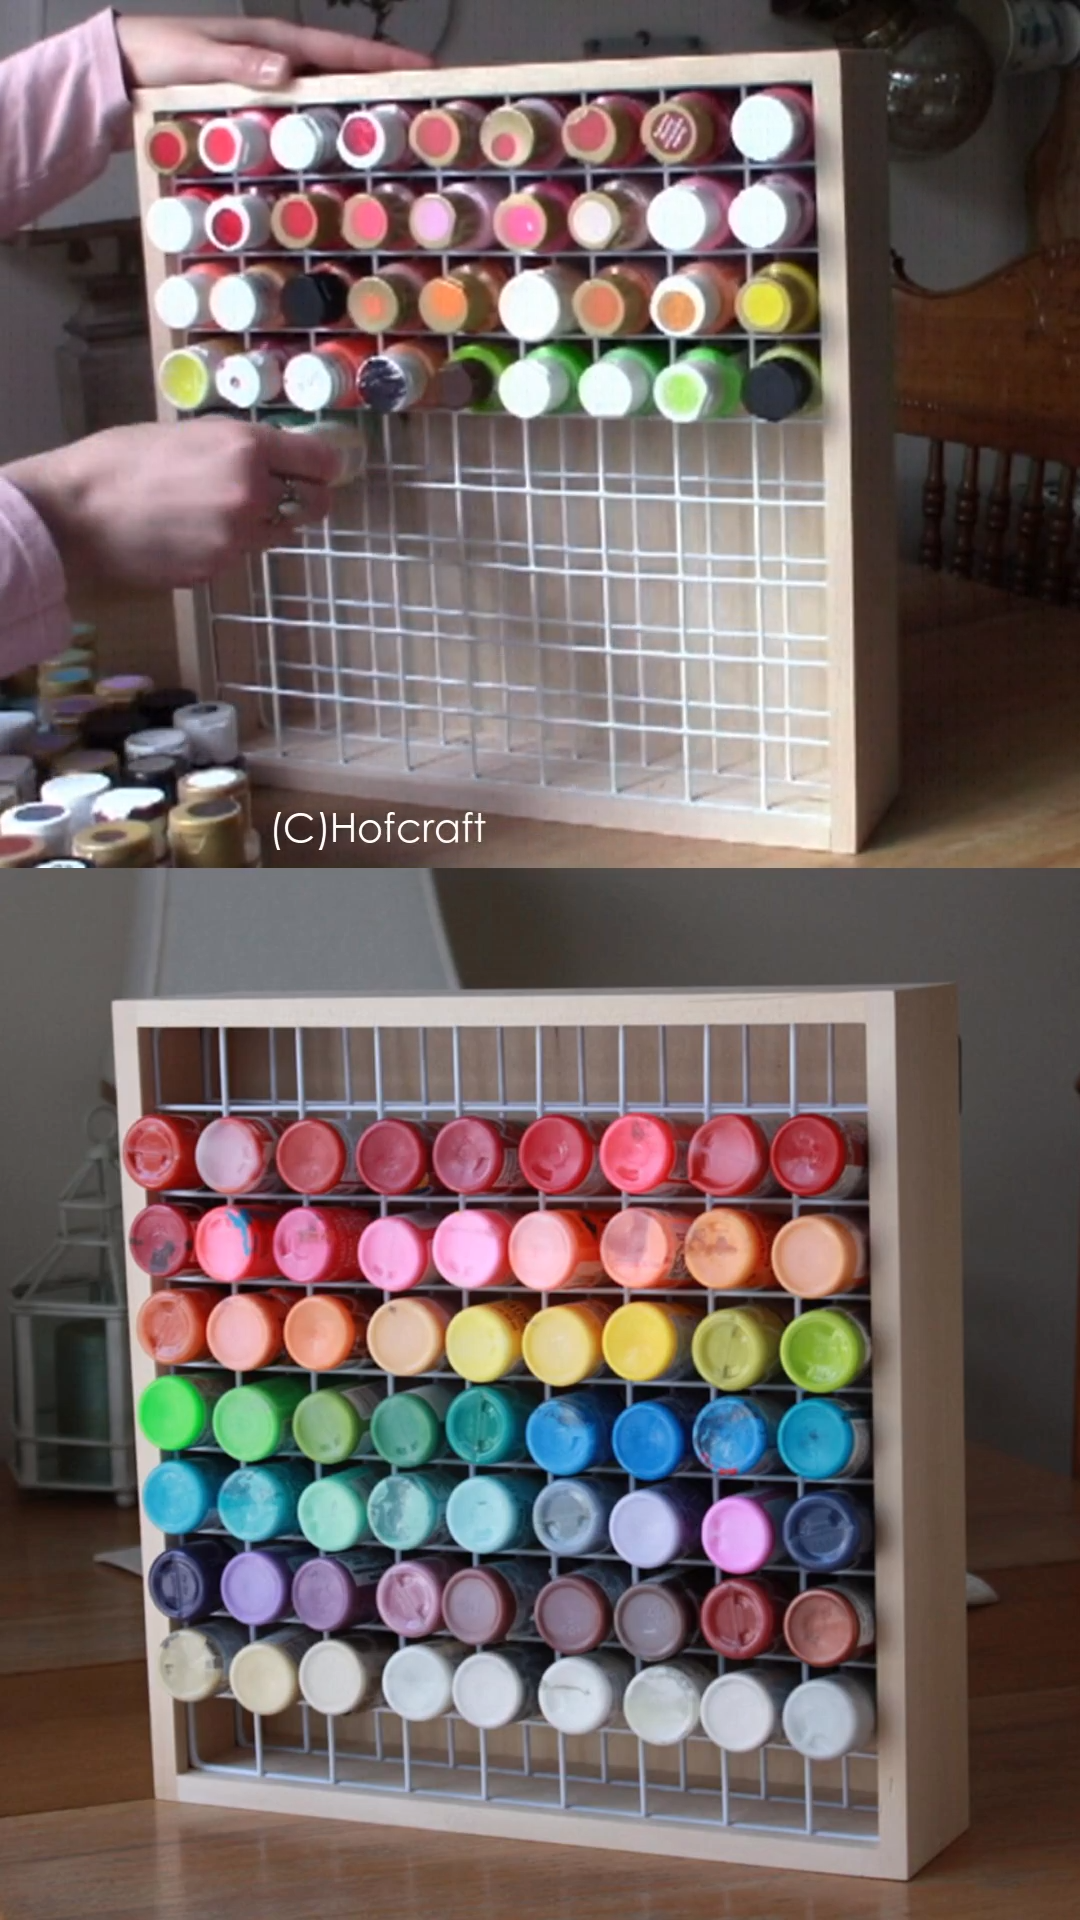 Craft Paint Storage Rack,High Quality Paint Organizer,Paint Storage,Paint Rack,Craft Storage,Paint Bottle Rack,Paint Storage,Storage is part of Craft paint storage - 2    Made out of smooth and sturdy basswood  Perfect for storing a variety of 2 oz  bottles including DecoArt Americana paints, FolkArt Acrylics or Delta Ceramcoat acrylic paint